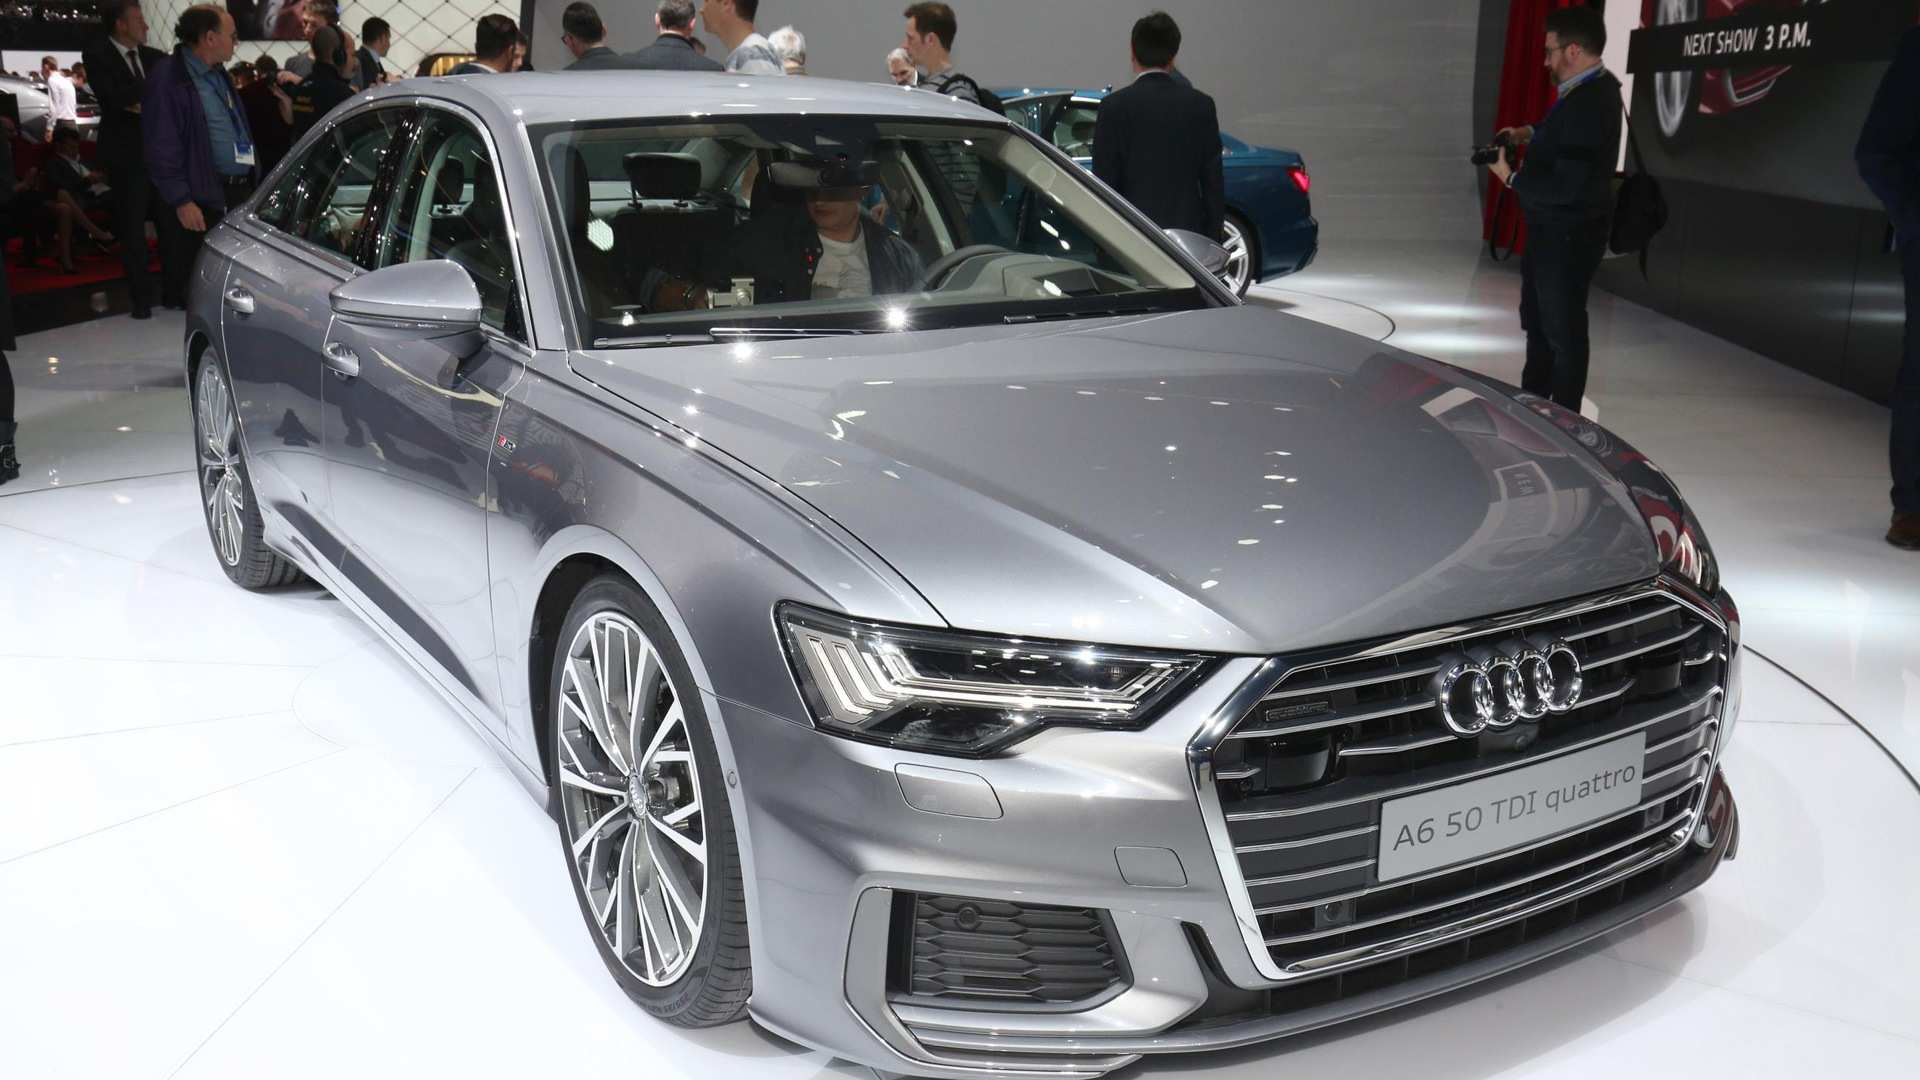 83 Great New Audi New A6 2019 Performance Spesification for New Audi New A6 2019 Performance